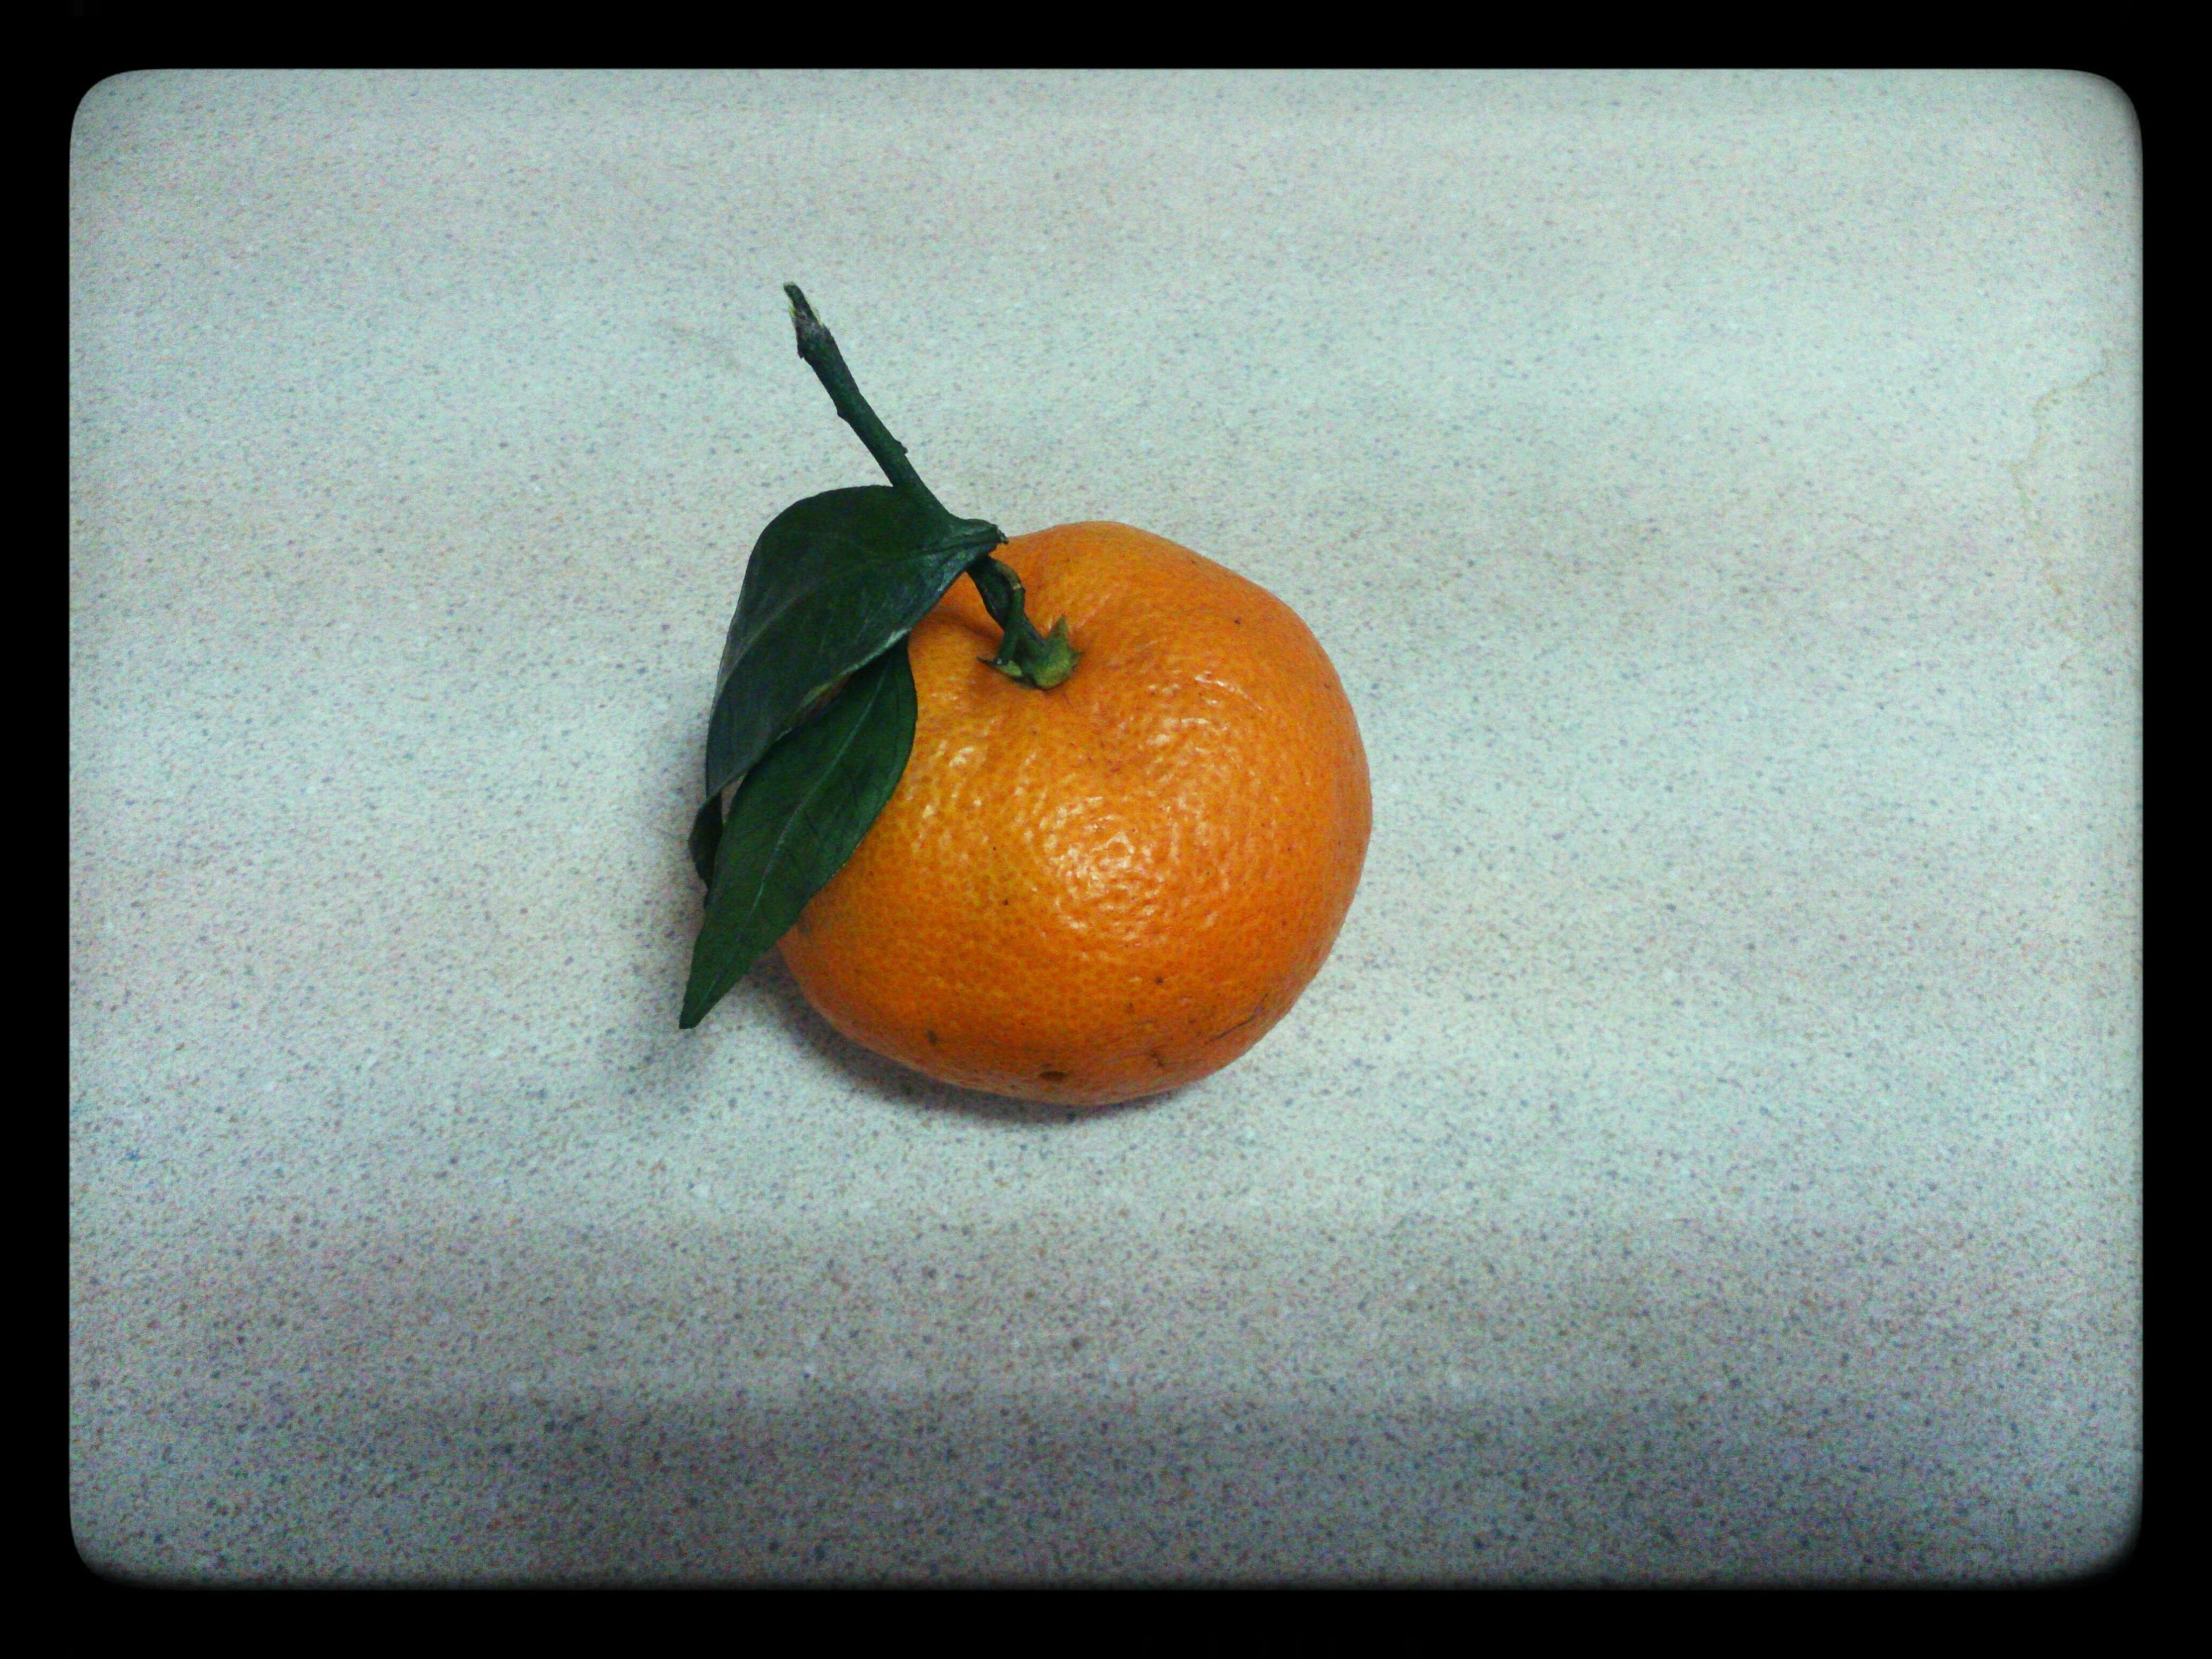 transfer print, food and drink, auto post production filter, indoors, food, fruit, healthy eating, orange color, close-up, still life, table, freshness, single object, no people, red, ripe, vignette, studio shot, high angle view, copy space